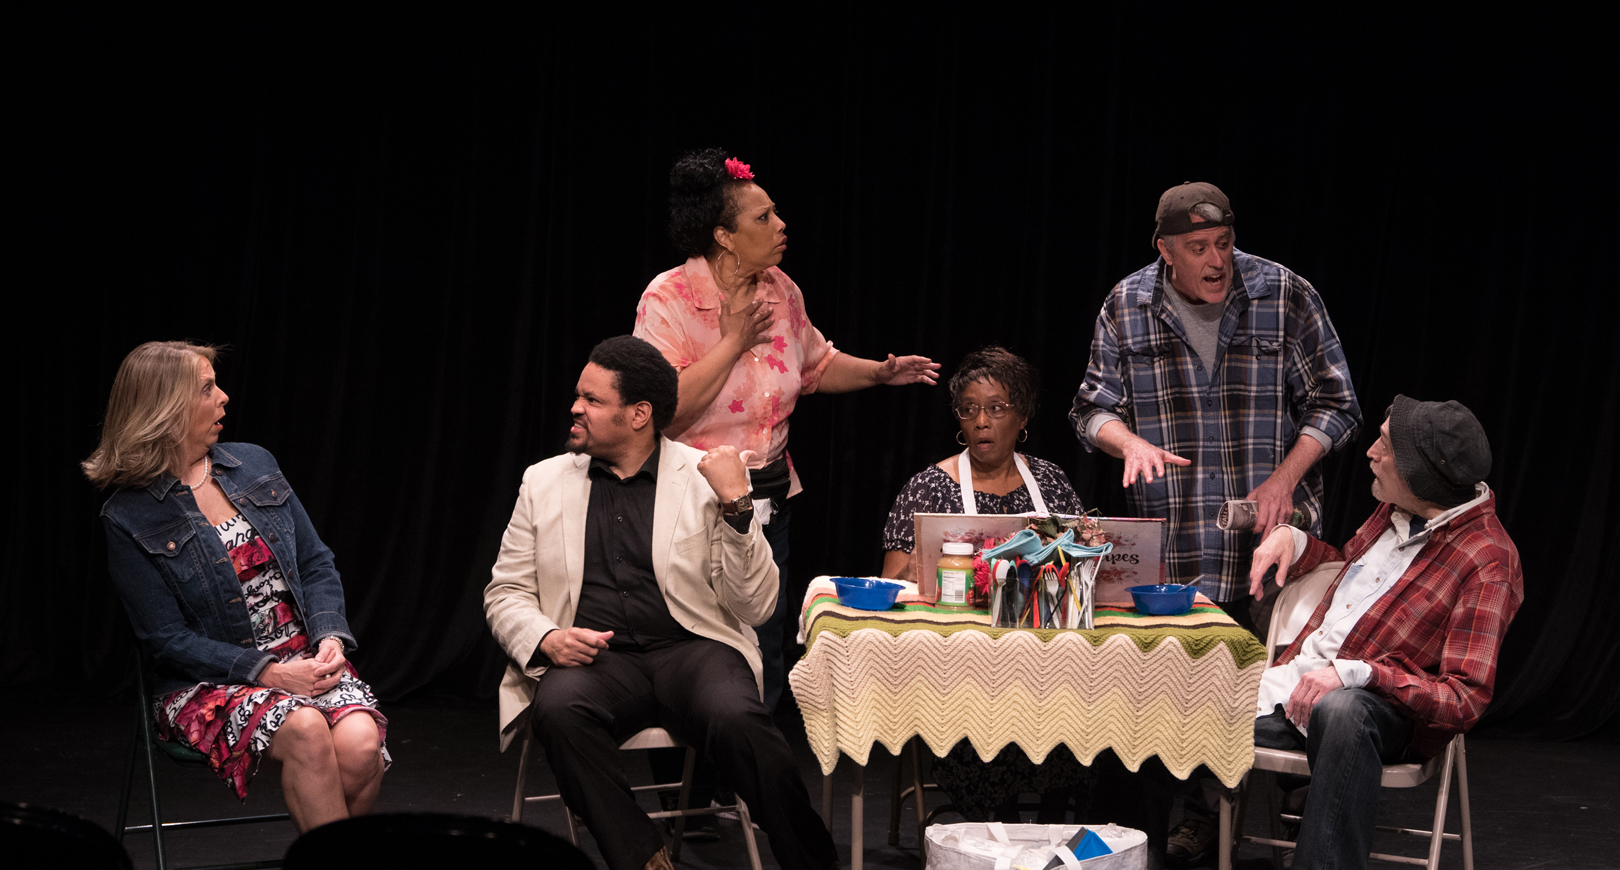 Six people in a stage production